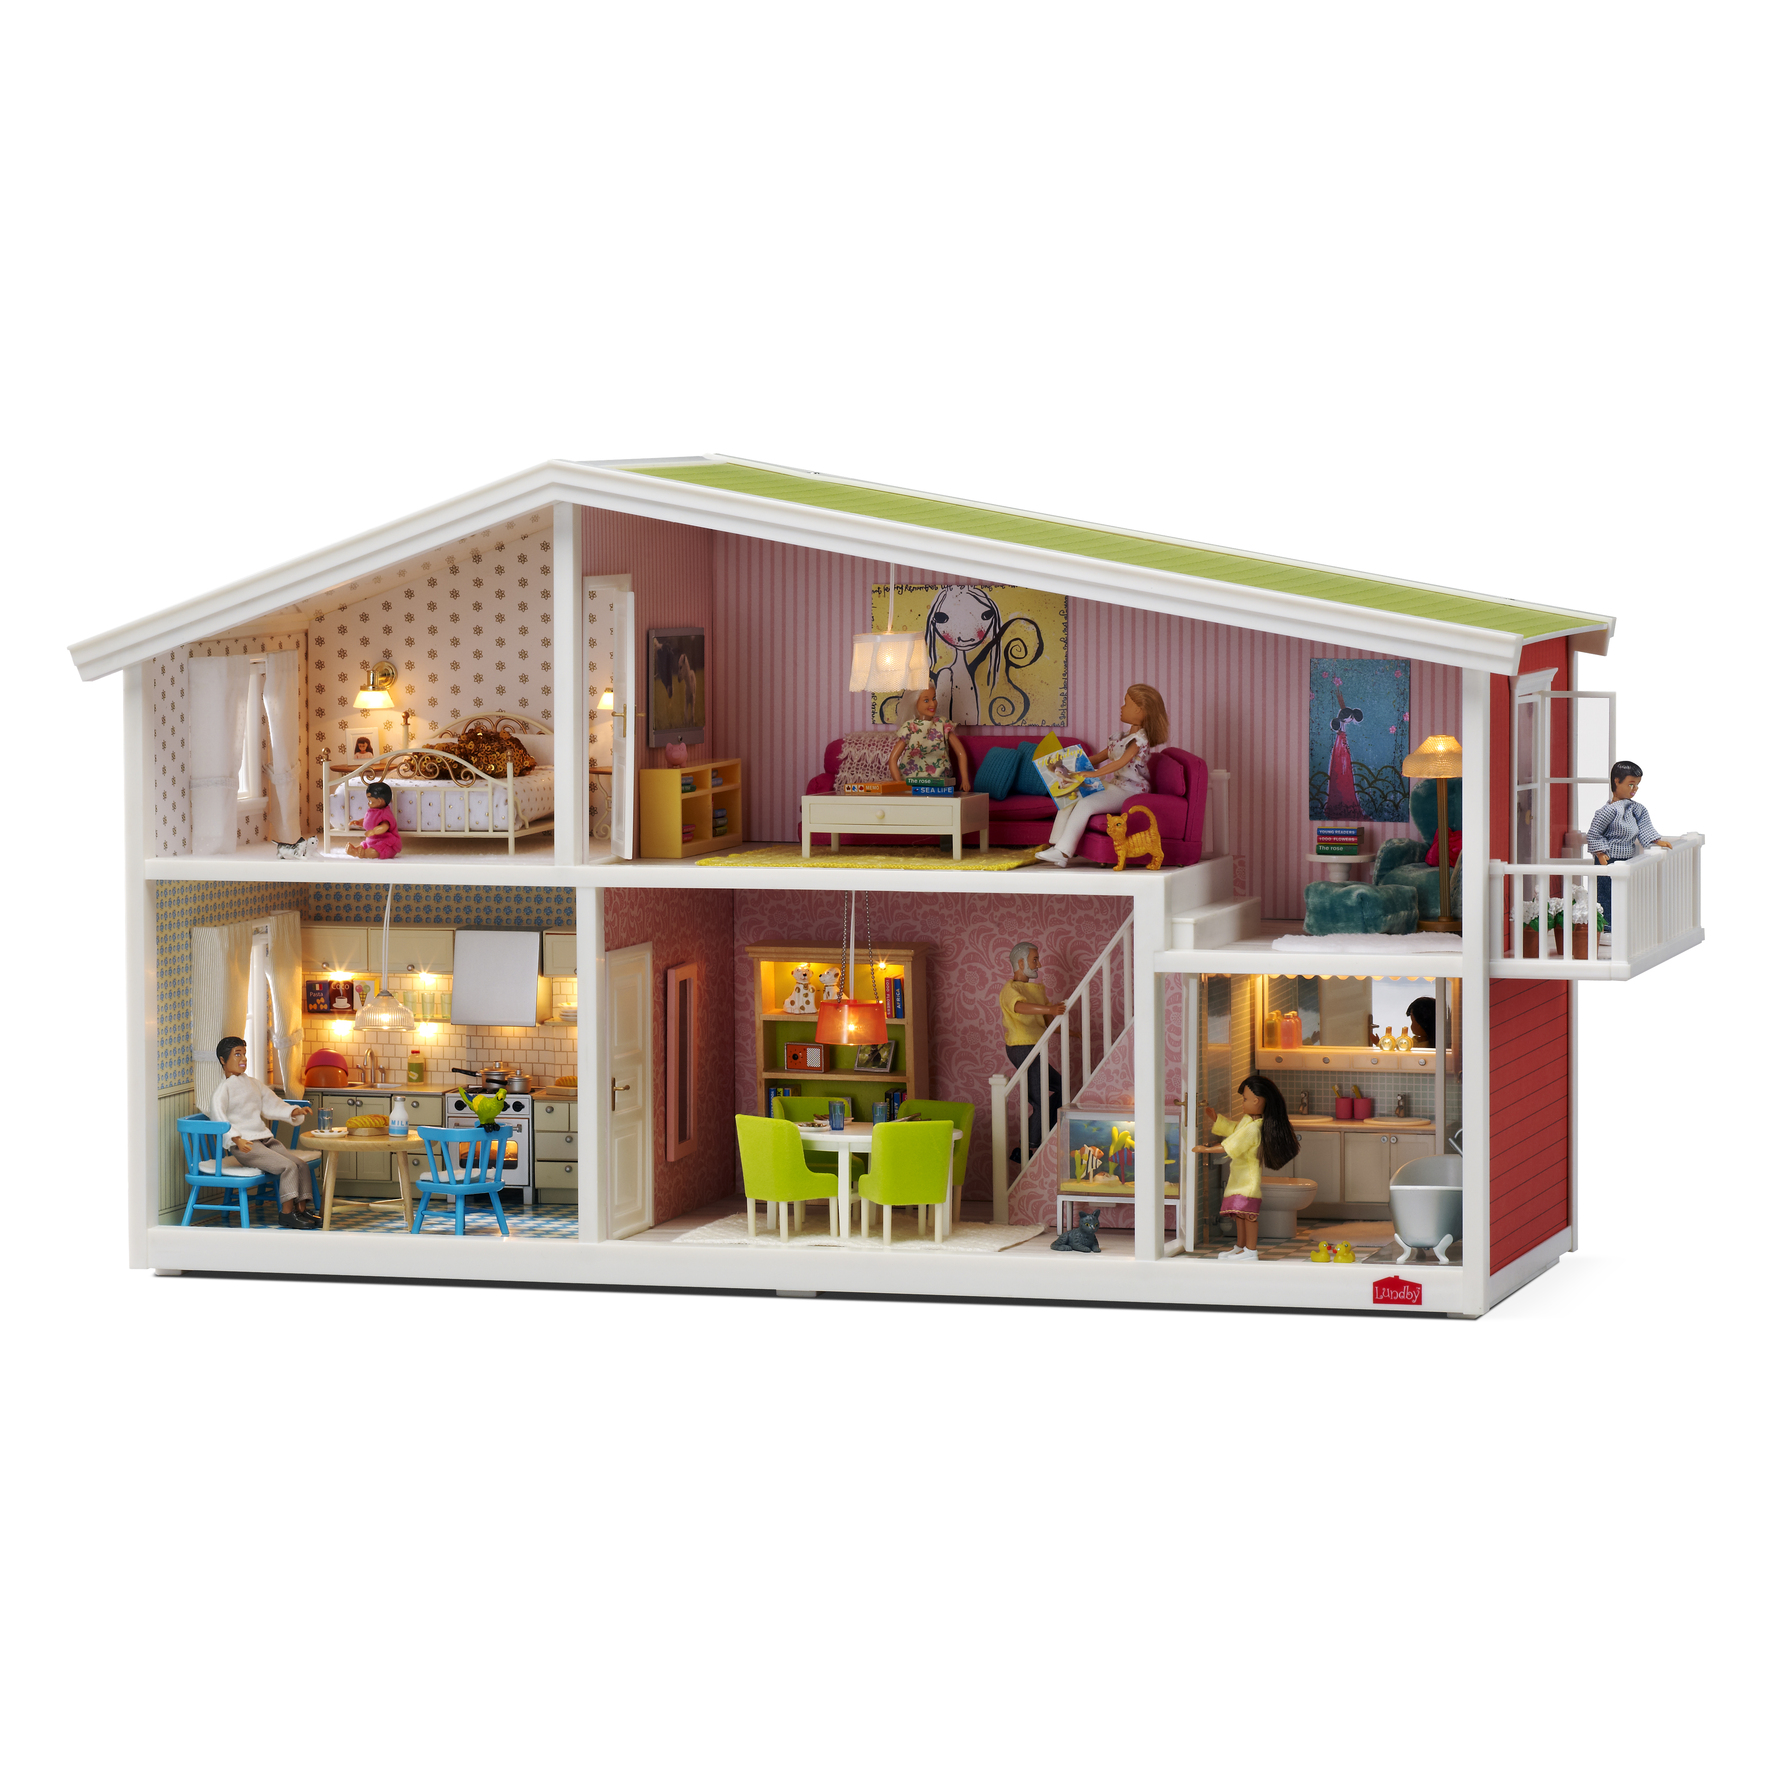 The Dolls House Lundby Dolls Houses A Modern Twist On A Classic Play Time